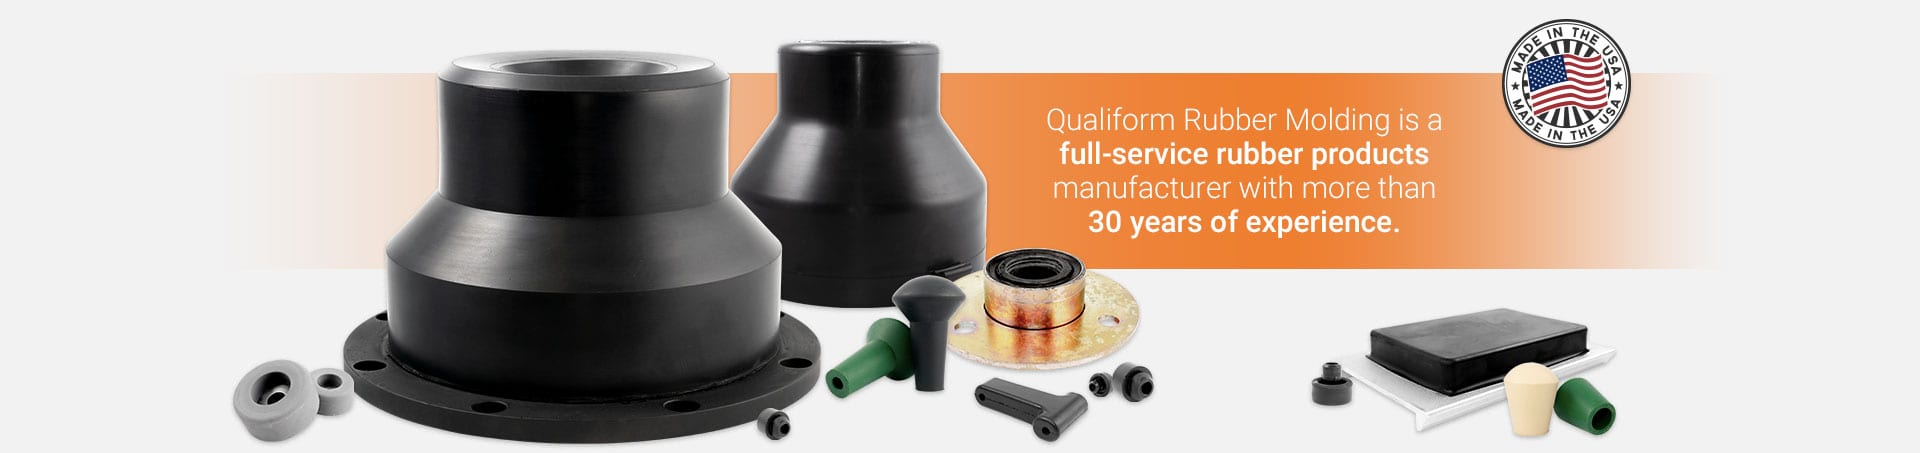 Qualiform Rubber Molding | Full-Service Rubber Products Provider